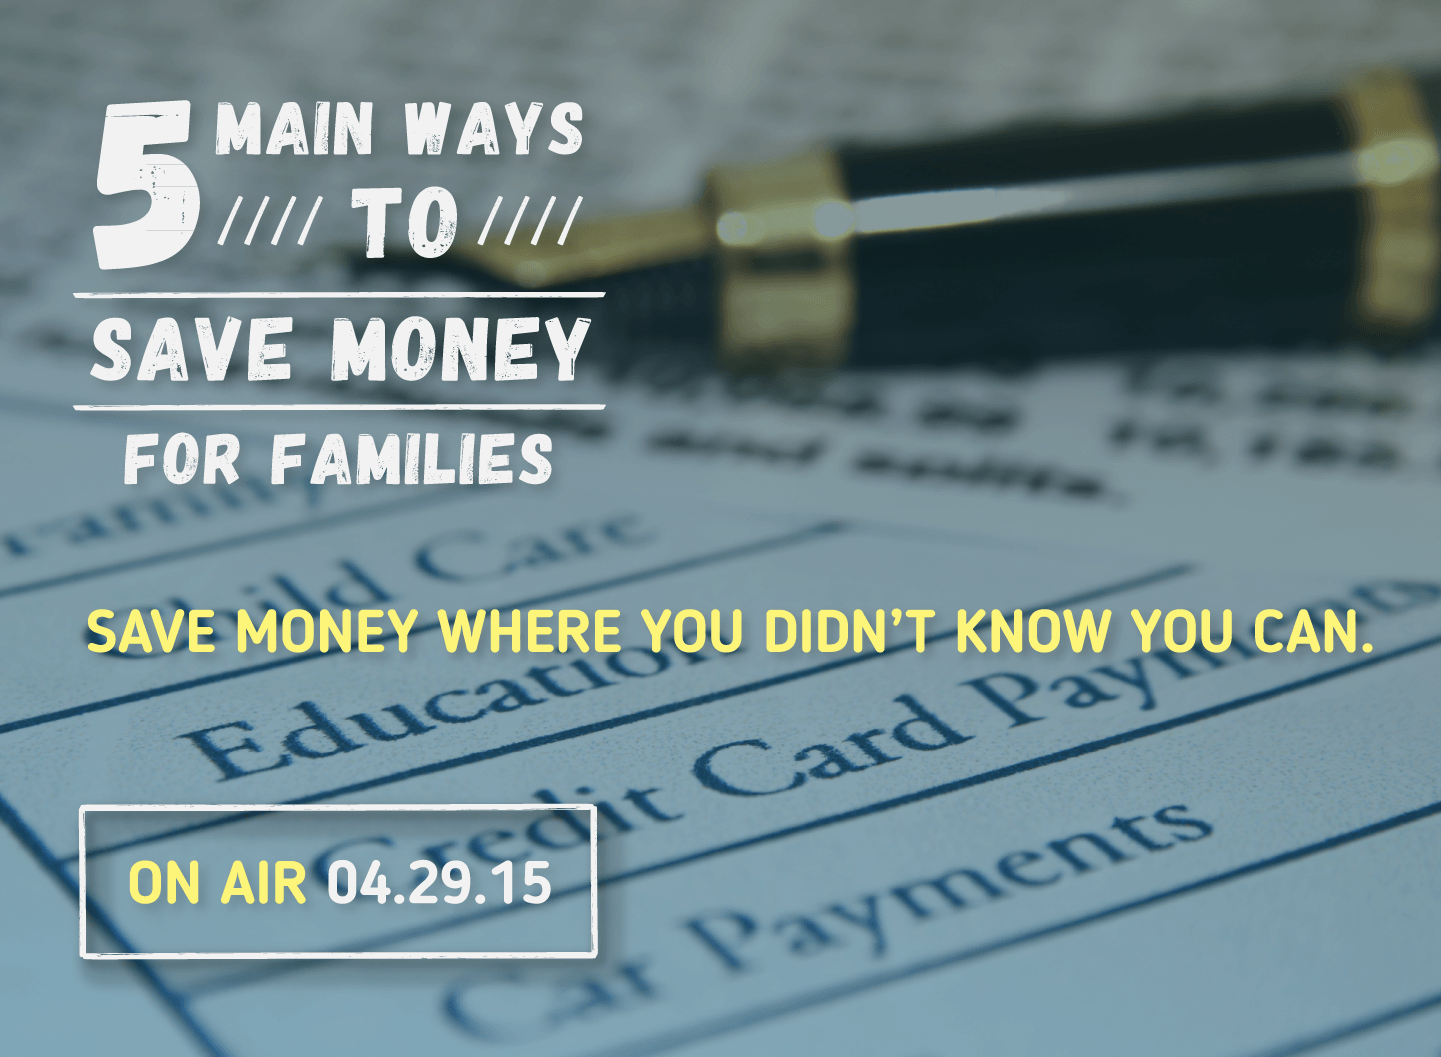 5 Main Ways To Save Money For Families